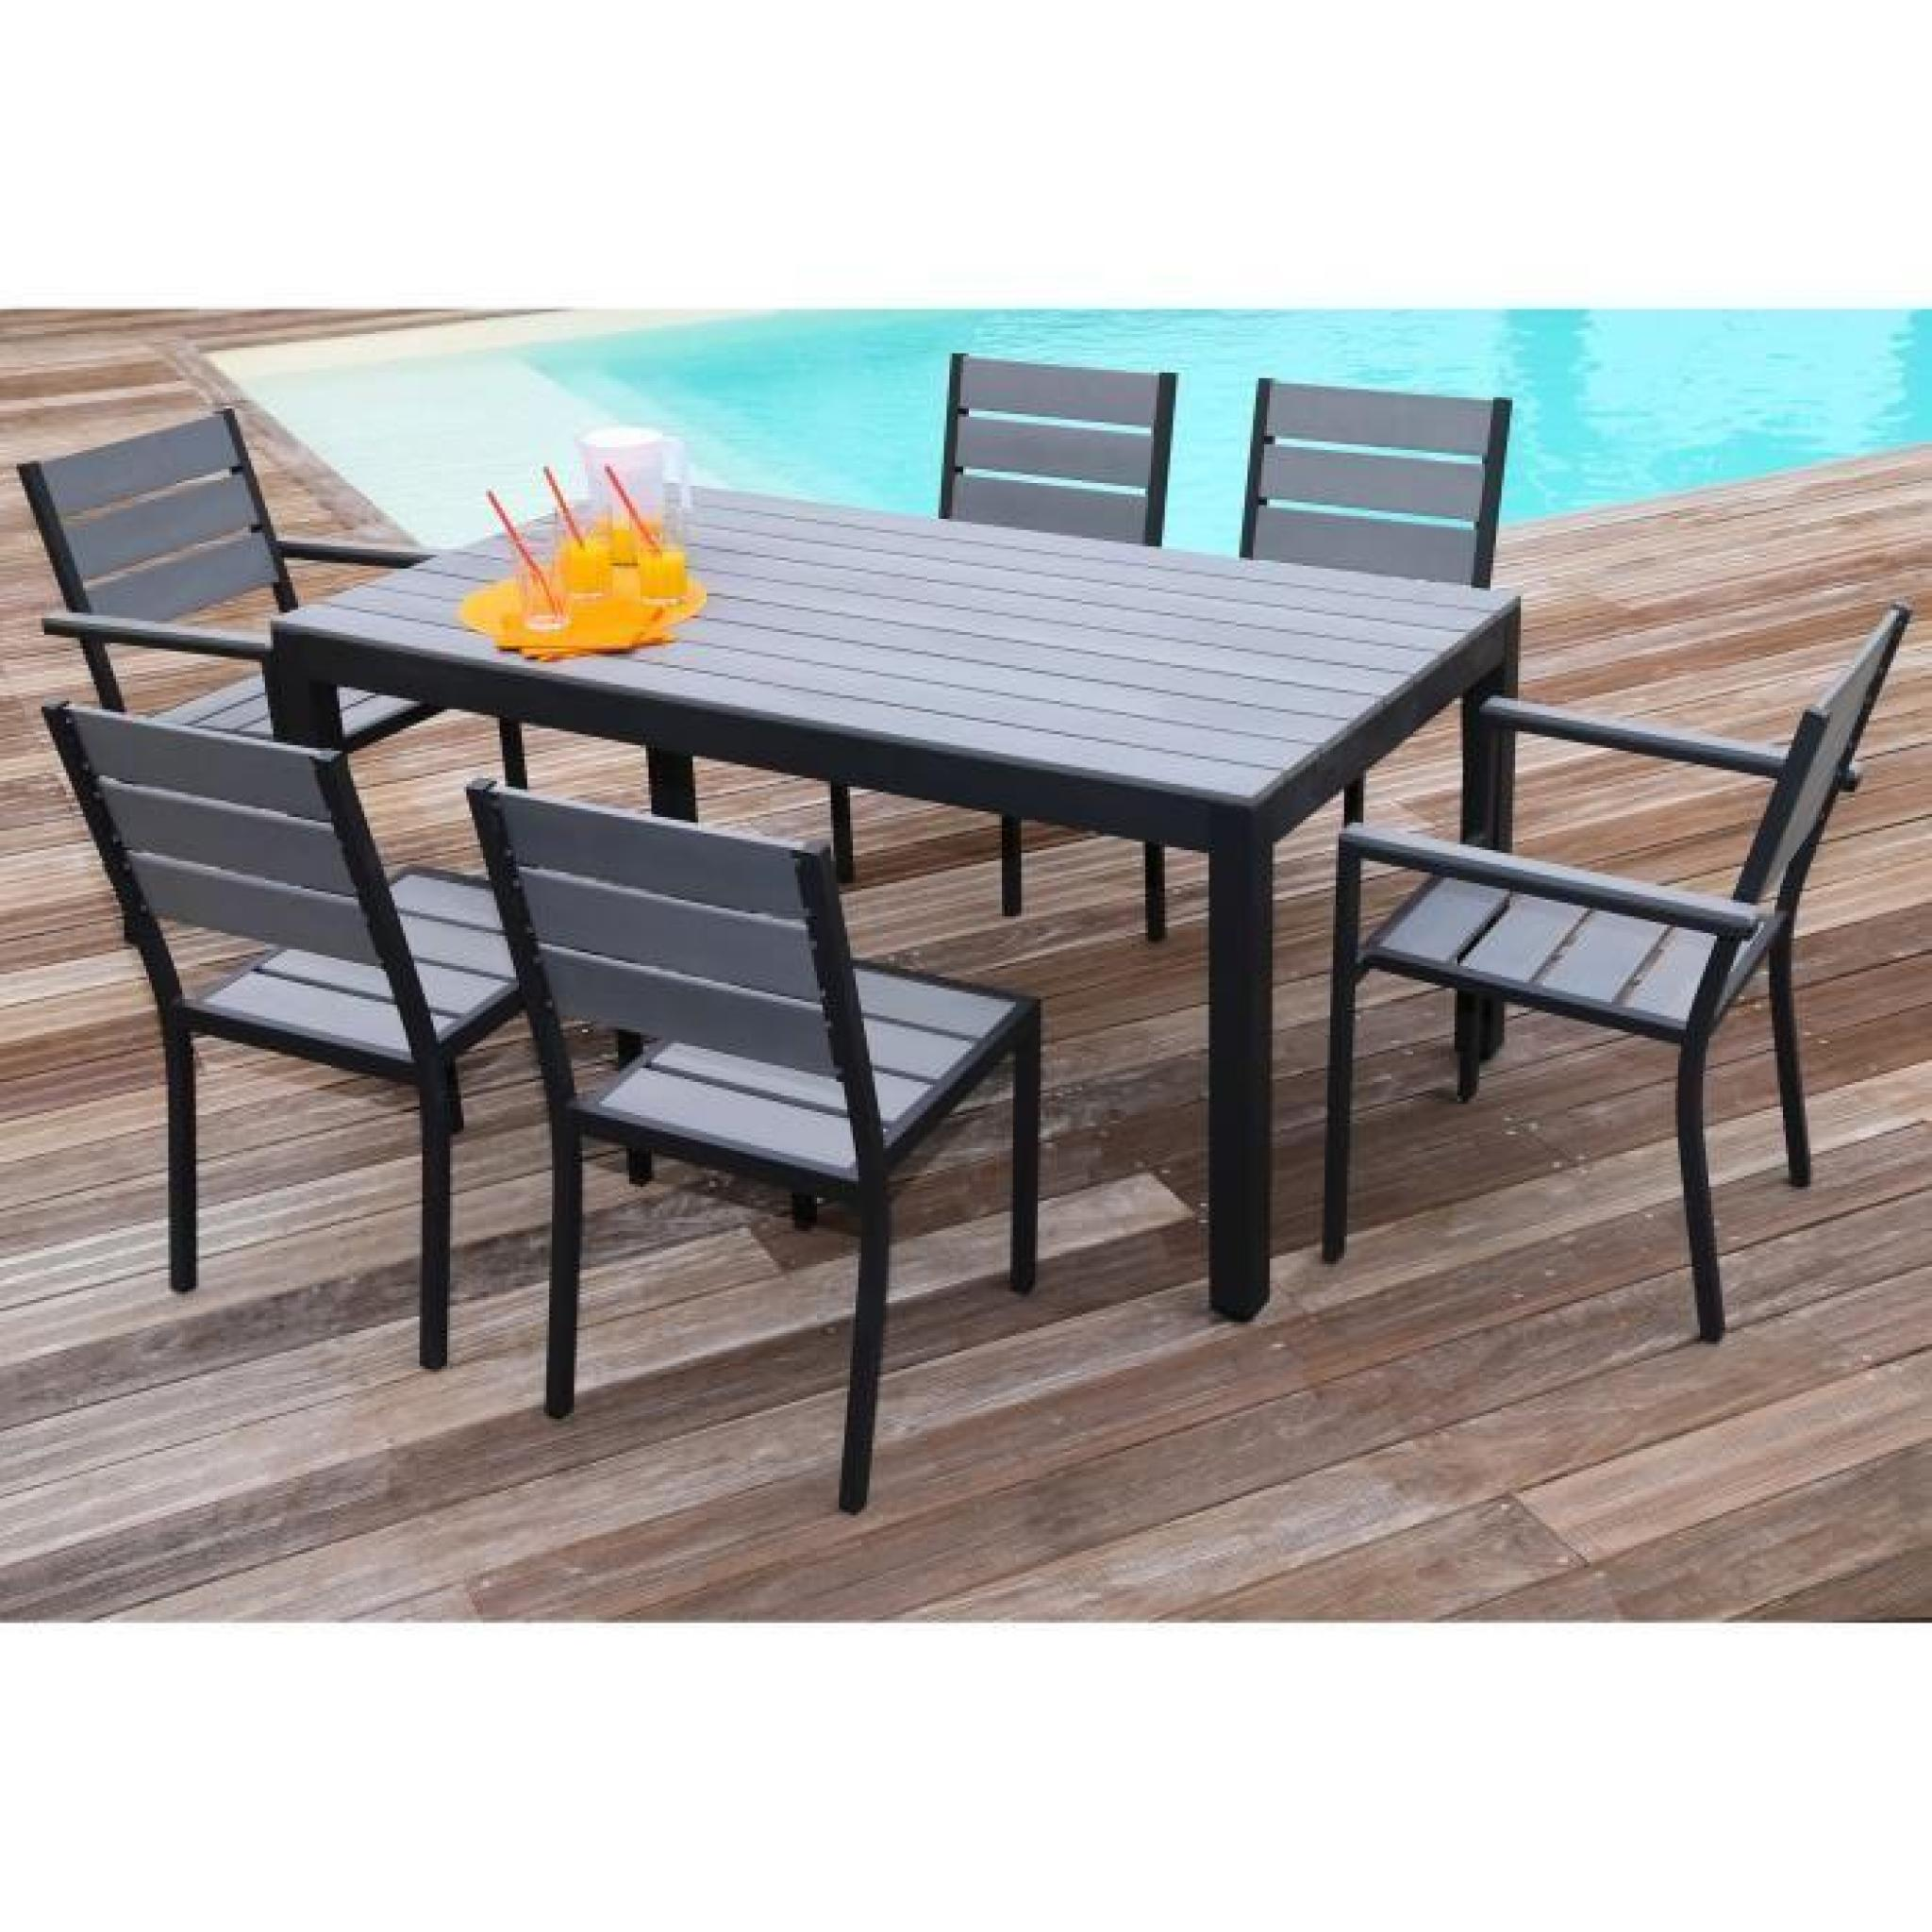 Ensemble Table Chaise Floride Ensemble Table De Jardin 160 Cm 43 2 Fauteuils 43 4